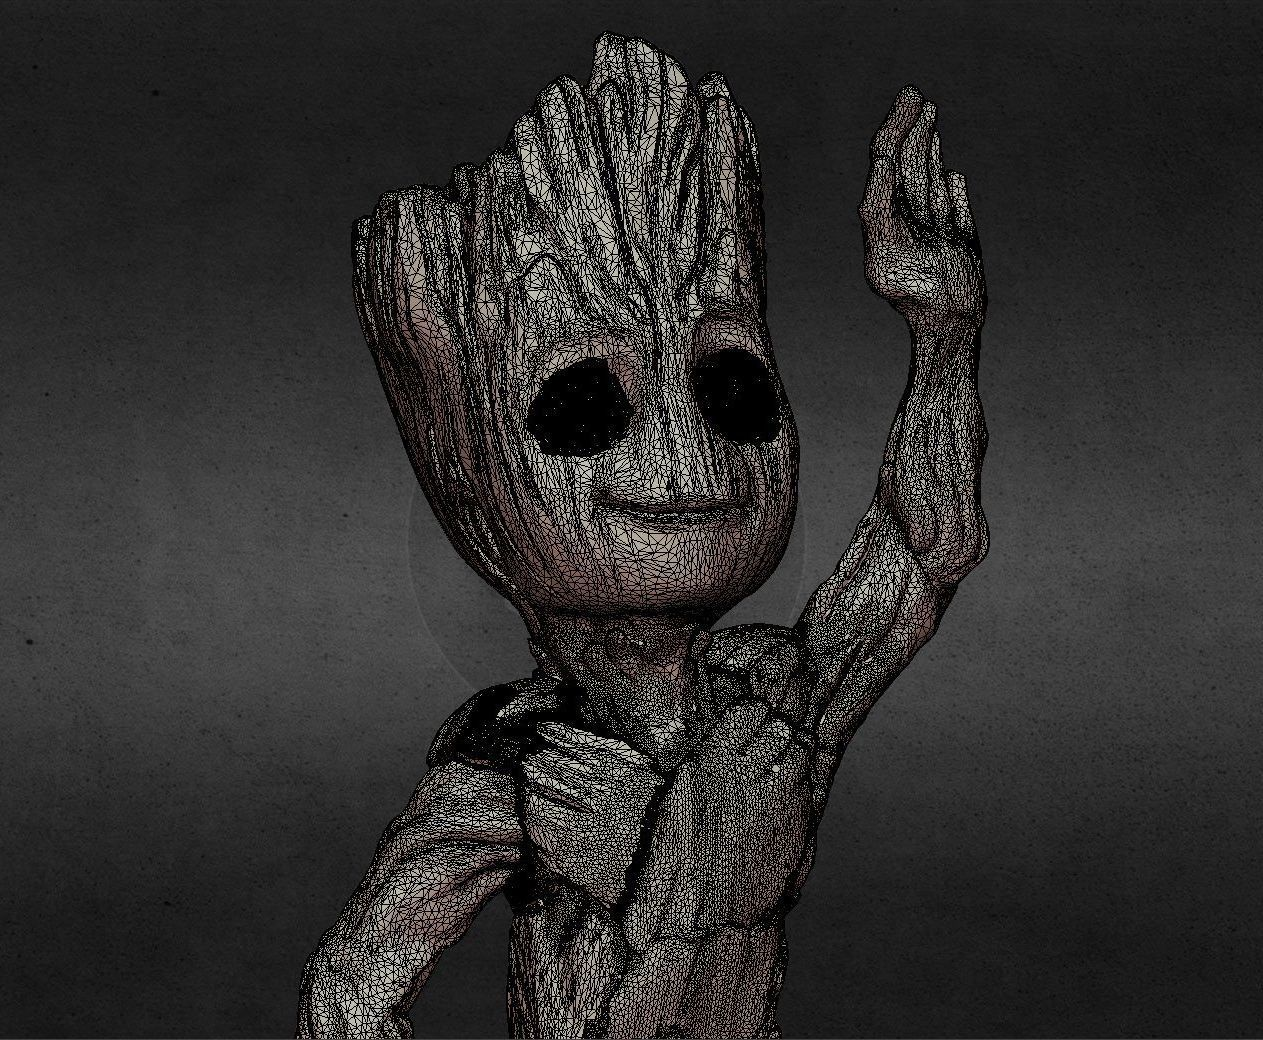 capture_06222017_113428.jpg Download OBJ file LIL BABY GROOT • 3D print template, Masterclip